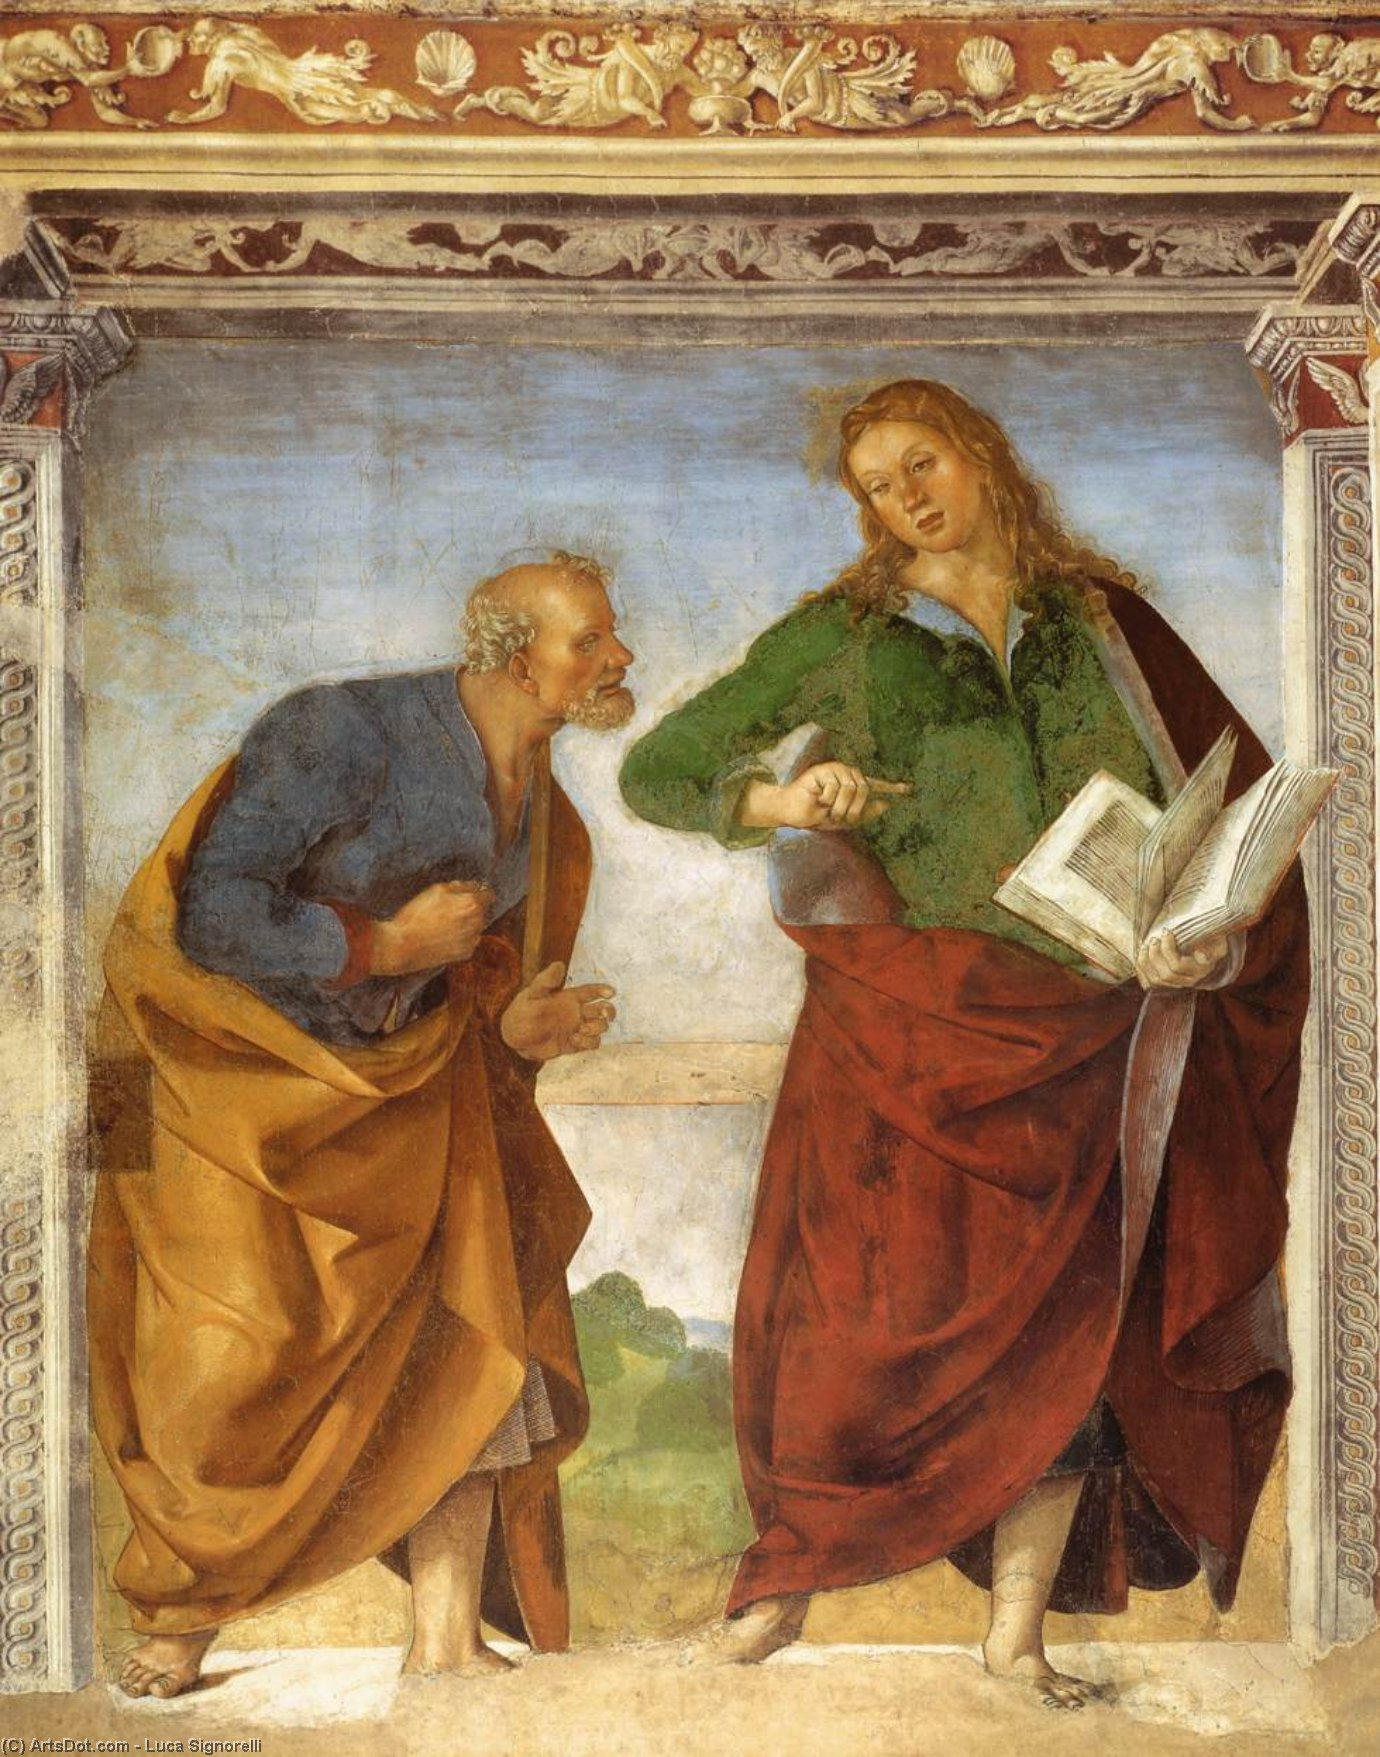 The Apostles Peter and John the Evangelist, Frescoes by Luca Signorelli (1445-1523, Italy)